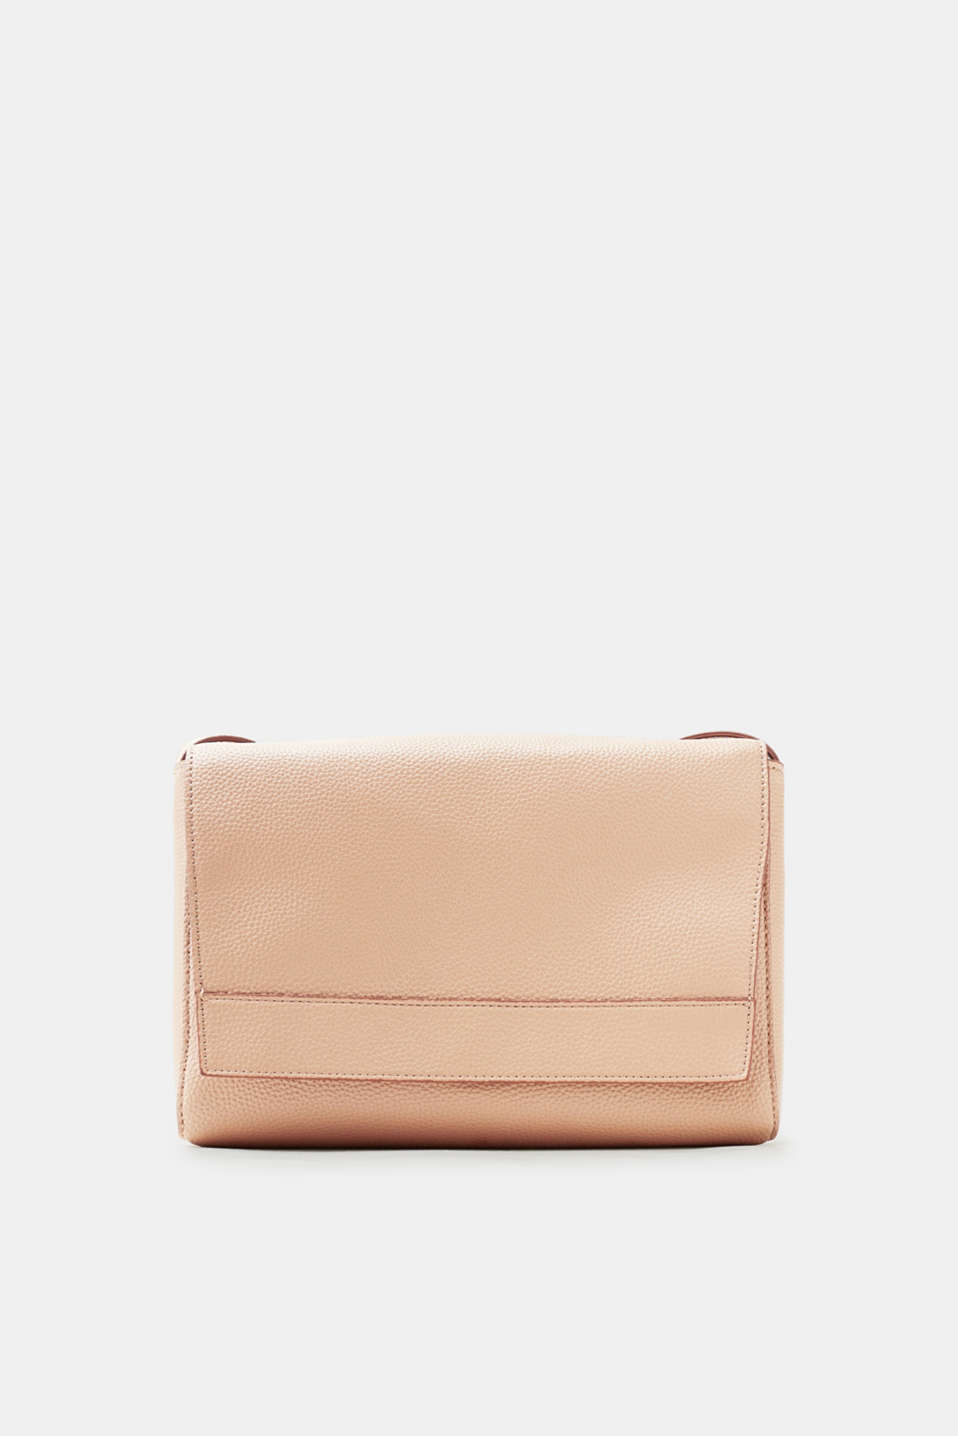 Timeless, minimalist design meets premium faux leather: small shoulder bag with a fold-over flap and long shoulder straps.